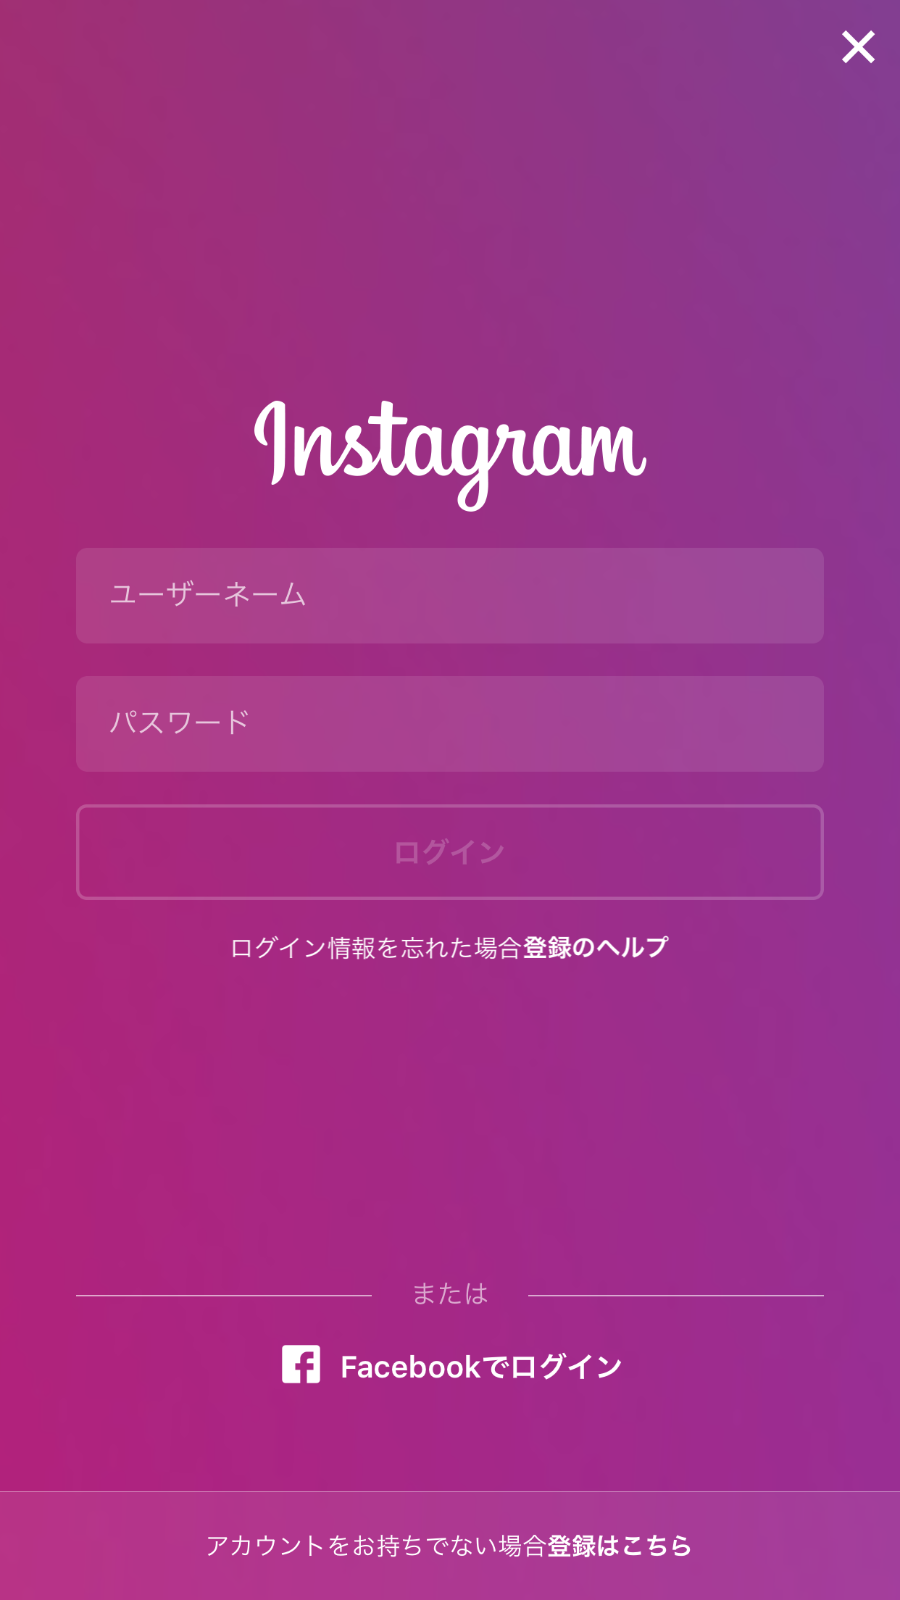 Instagram multi account 1366